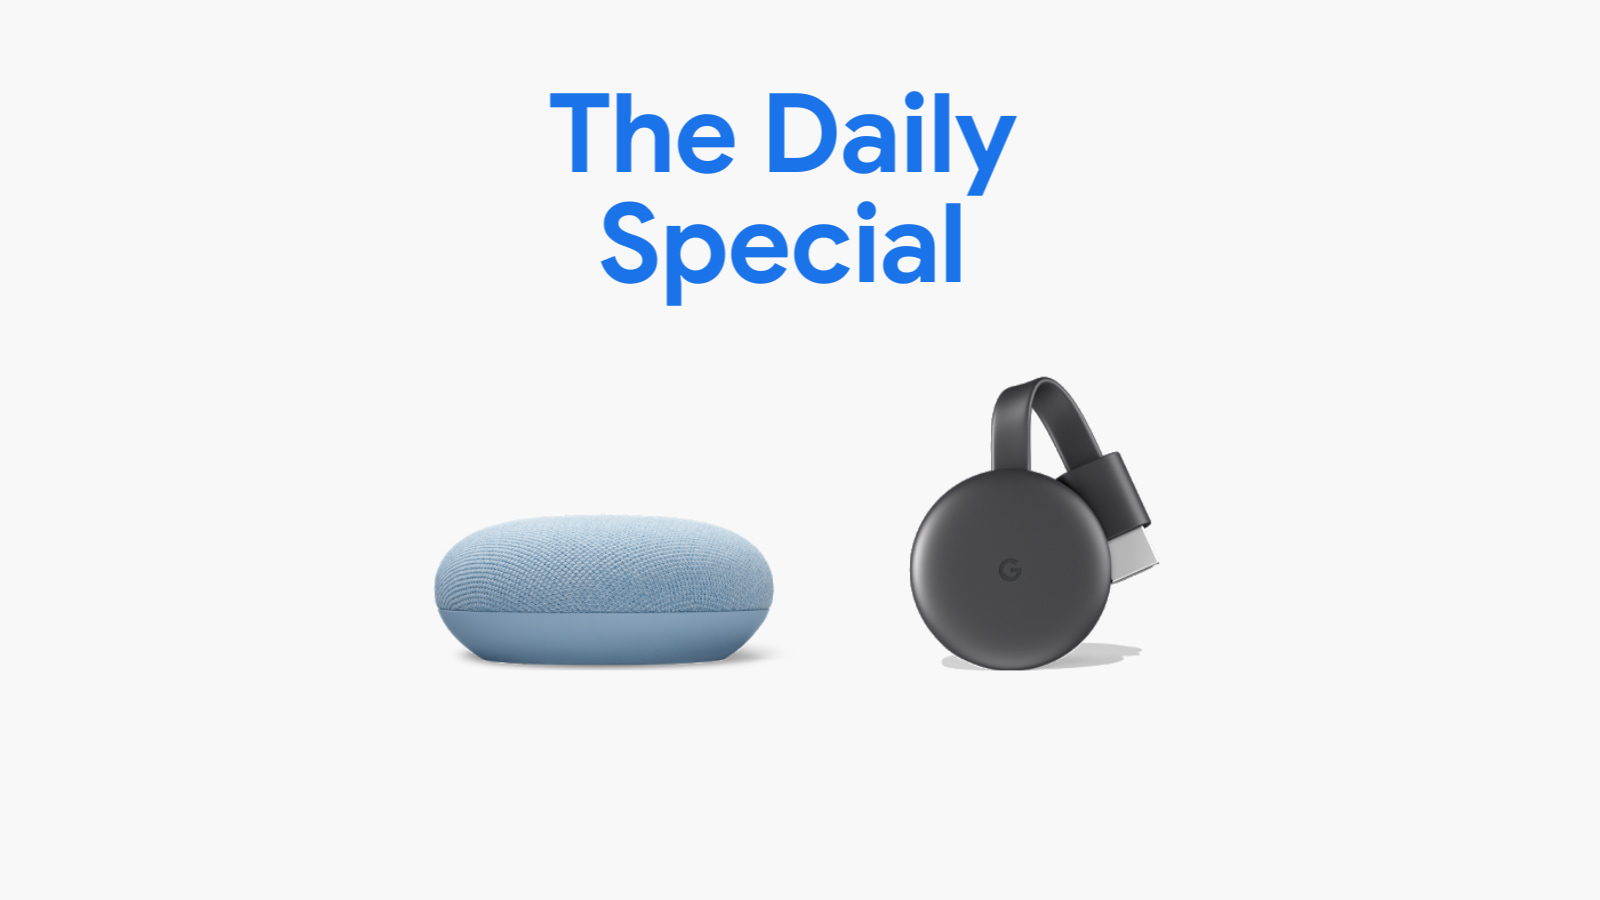 Google Store Daily Special: Save $15 on this Nest Mini & Chromecast bundle